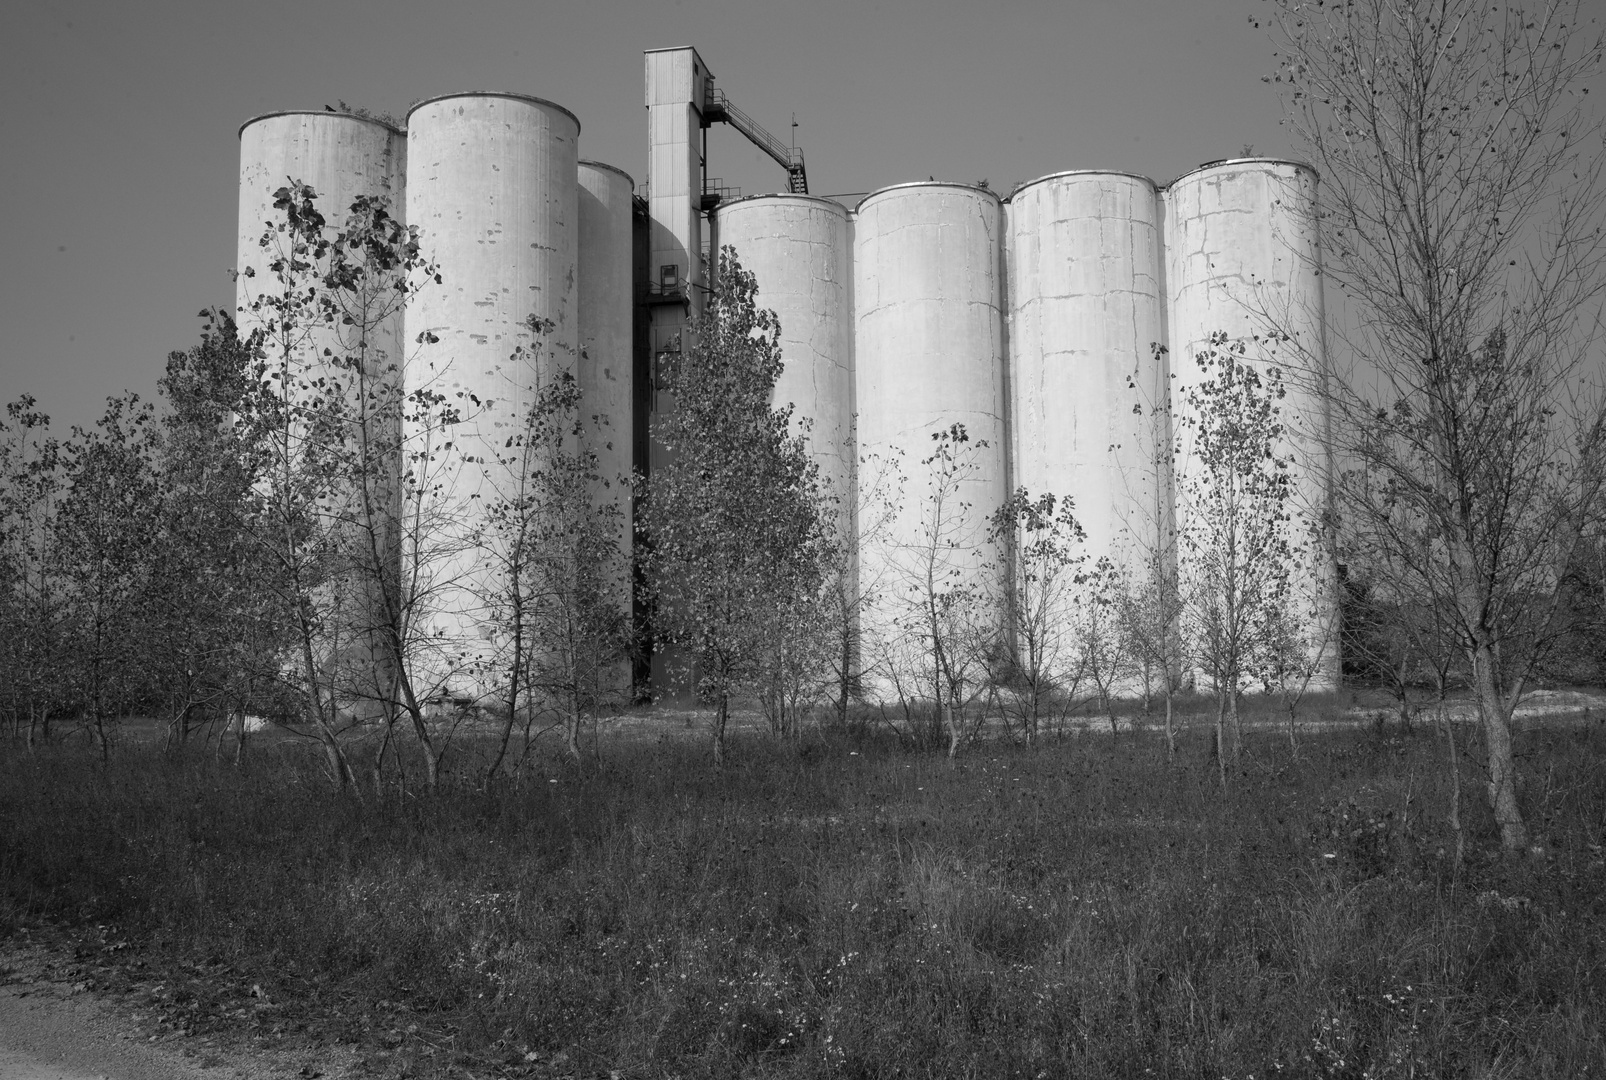 Abandoned Grain Storage